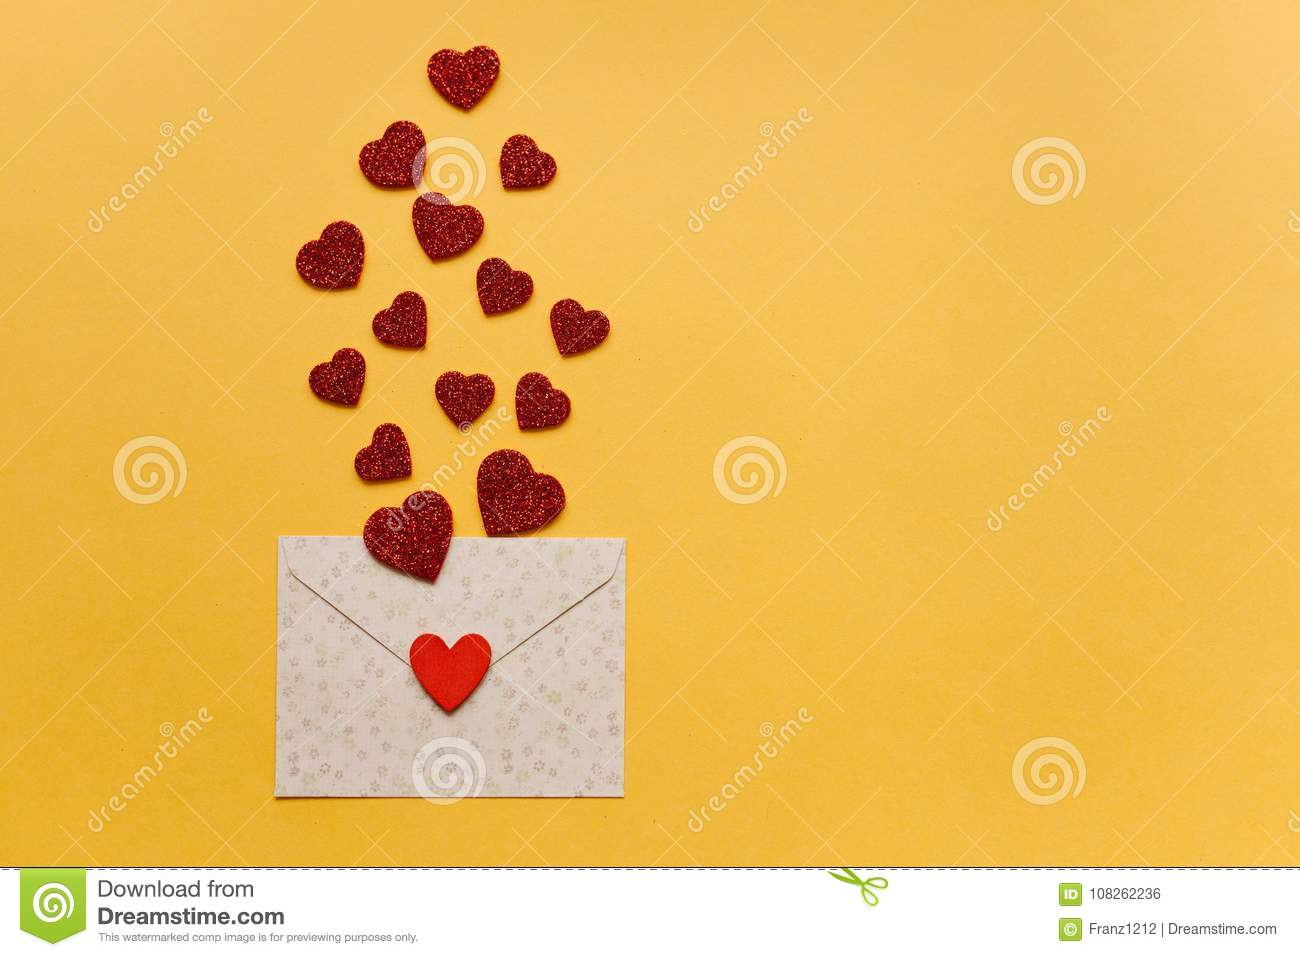 Envelope With Symbols In The Form Of Red Hearts On A Yellow